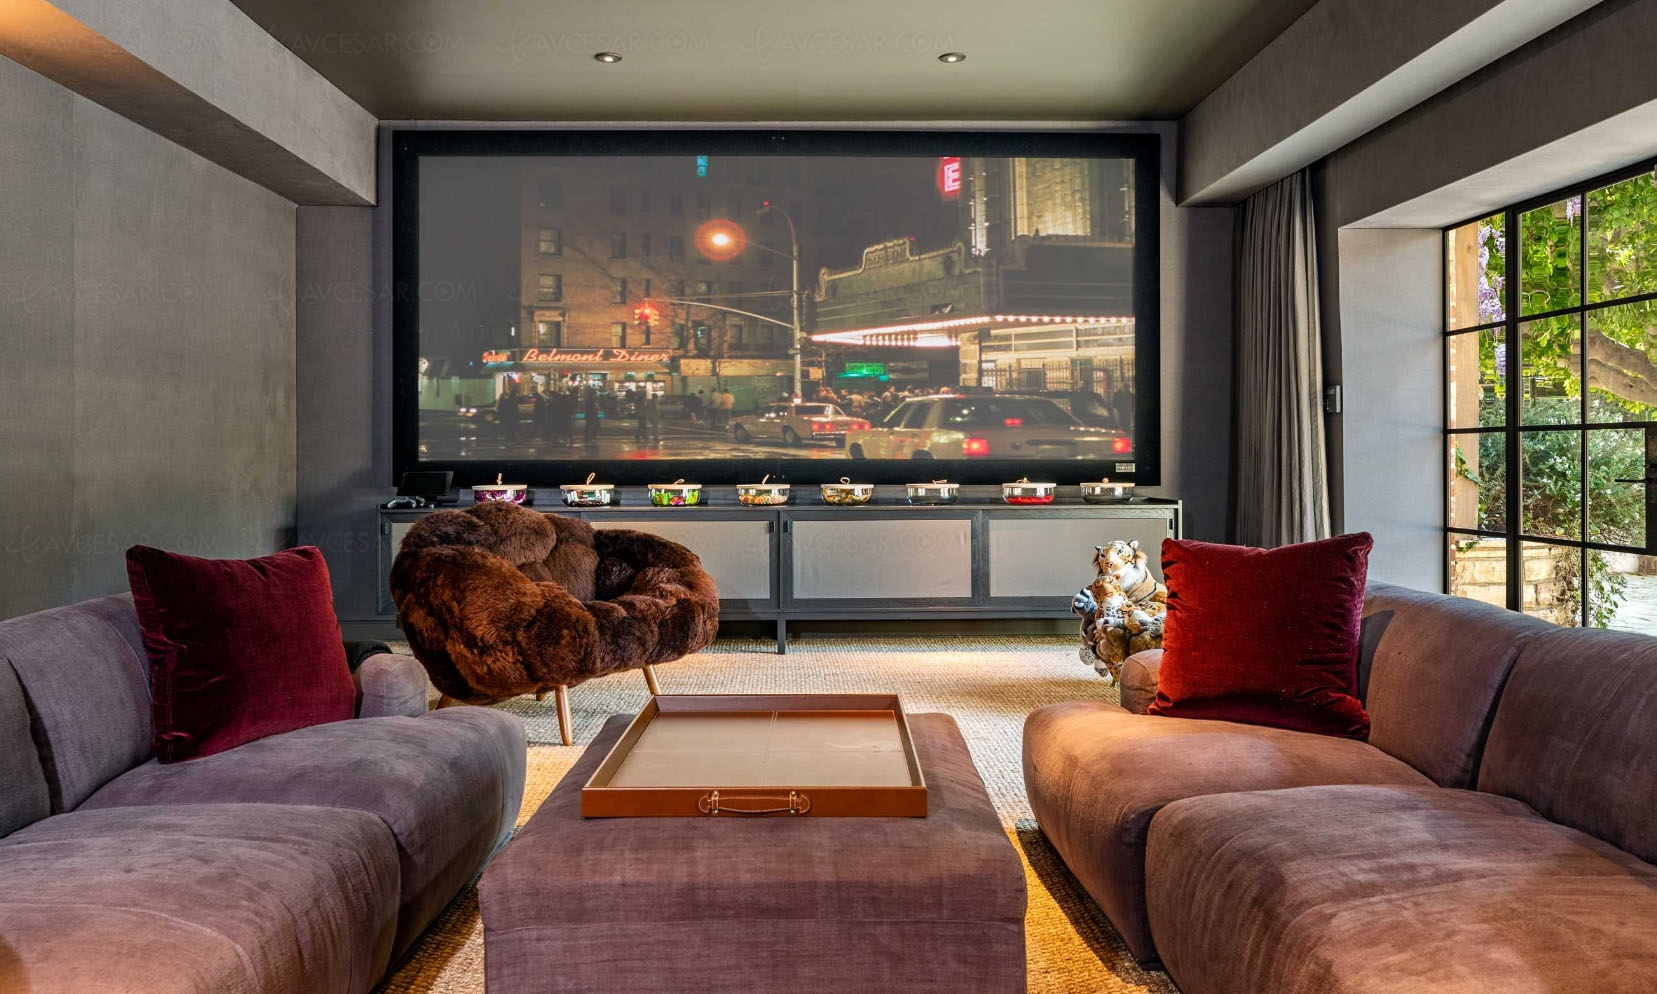 Maison A Vendre A Beverly Hills Avec Home Cinema Old Hollywood